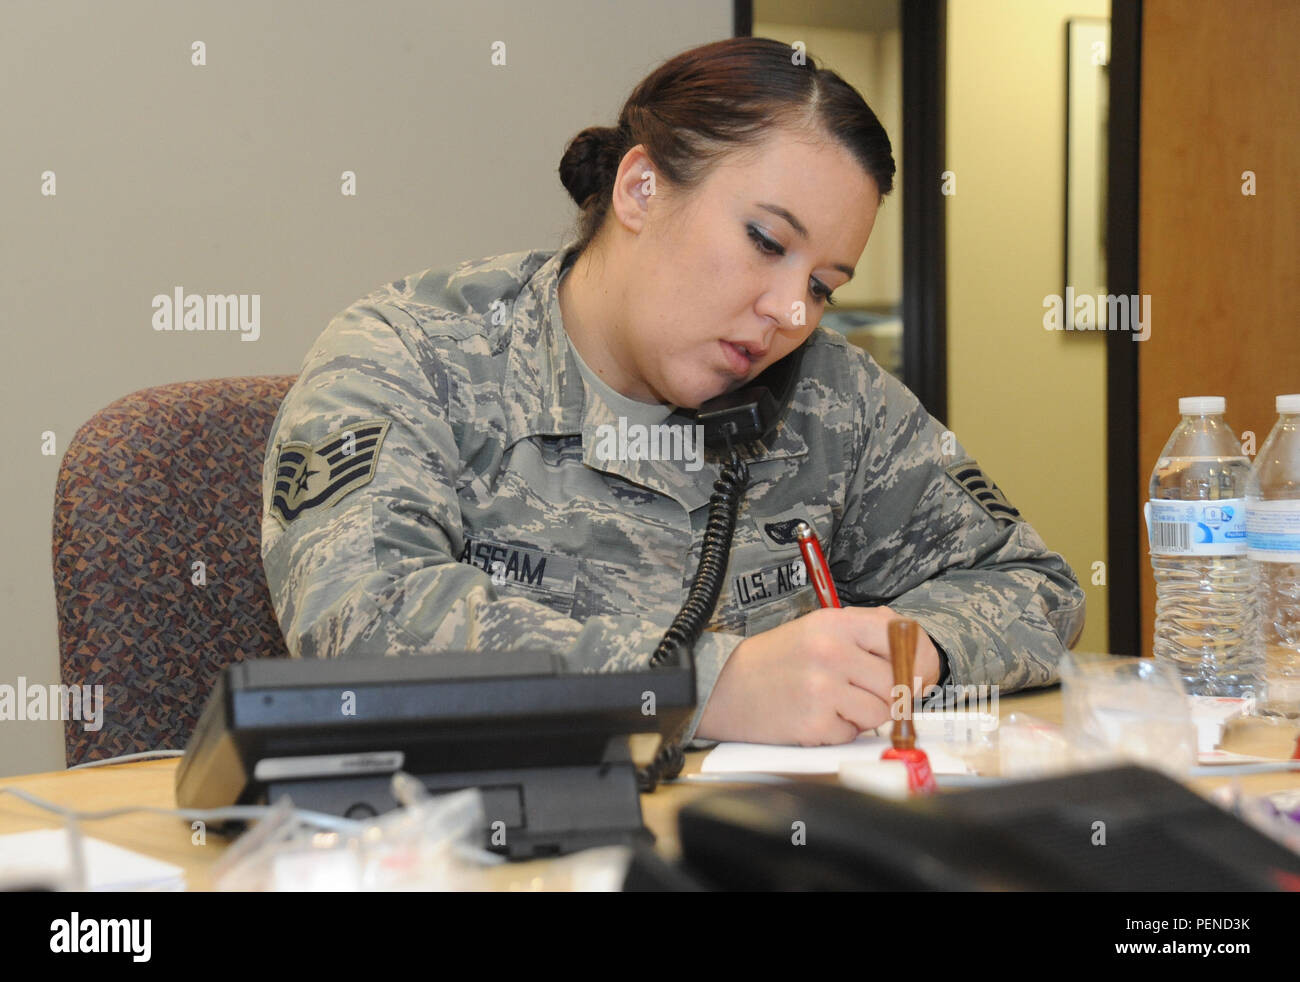 Oregon Staff Sgt. Sara Wassam, assigned to the 142nd Fighter Wing Security Forces Squadron, answers phone calls at KPAM 860 radio, in Clackamas, Ore., Dec. 4, 2015, helping raise money for Operation Santa Claus, an annual fundraiser, which assists local families coping with income loss due to military deployment. (U.S. Air Force photo by Tech. Sgt. John Hughel, 142nd Fighter Wing Public Affairs) - Stock Image